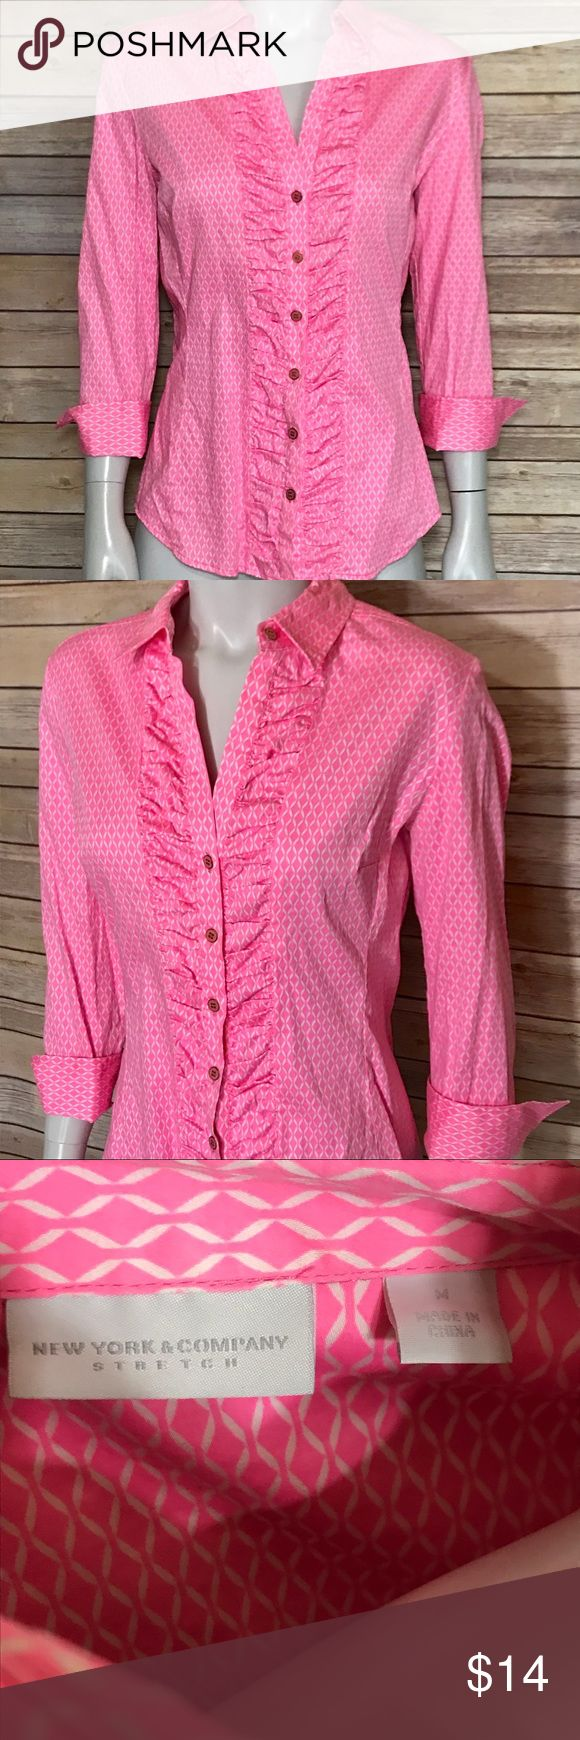 {new york & company} pink & white button down top Pink dress shirt with white pattern. Ruching near the buttons. Stylish professional shirt! New York & Company Tops Button Down Shirts